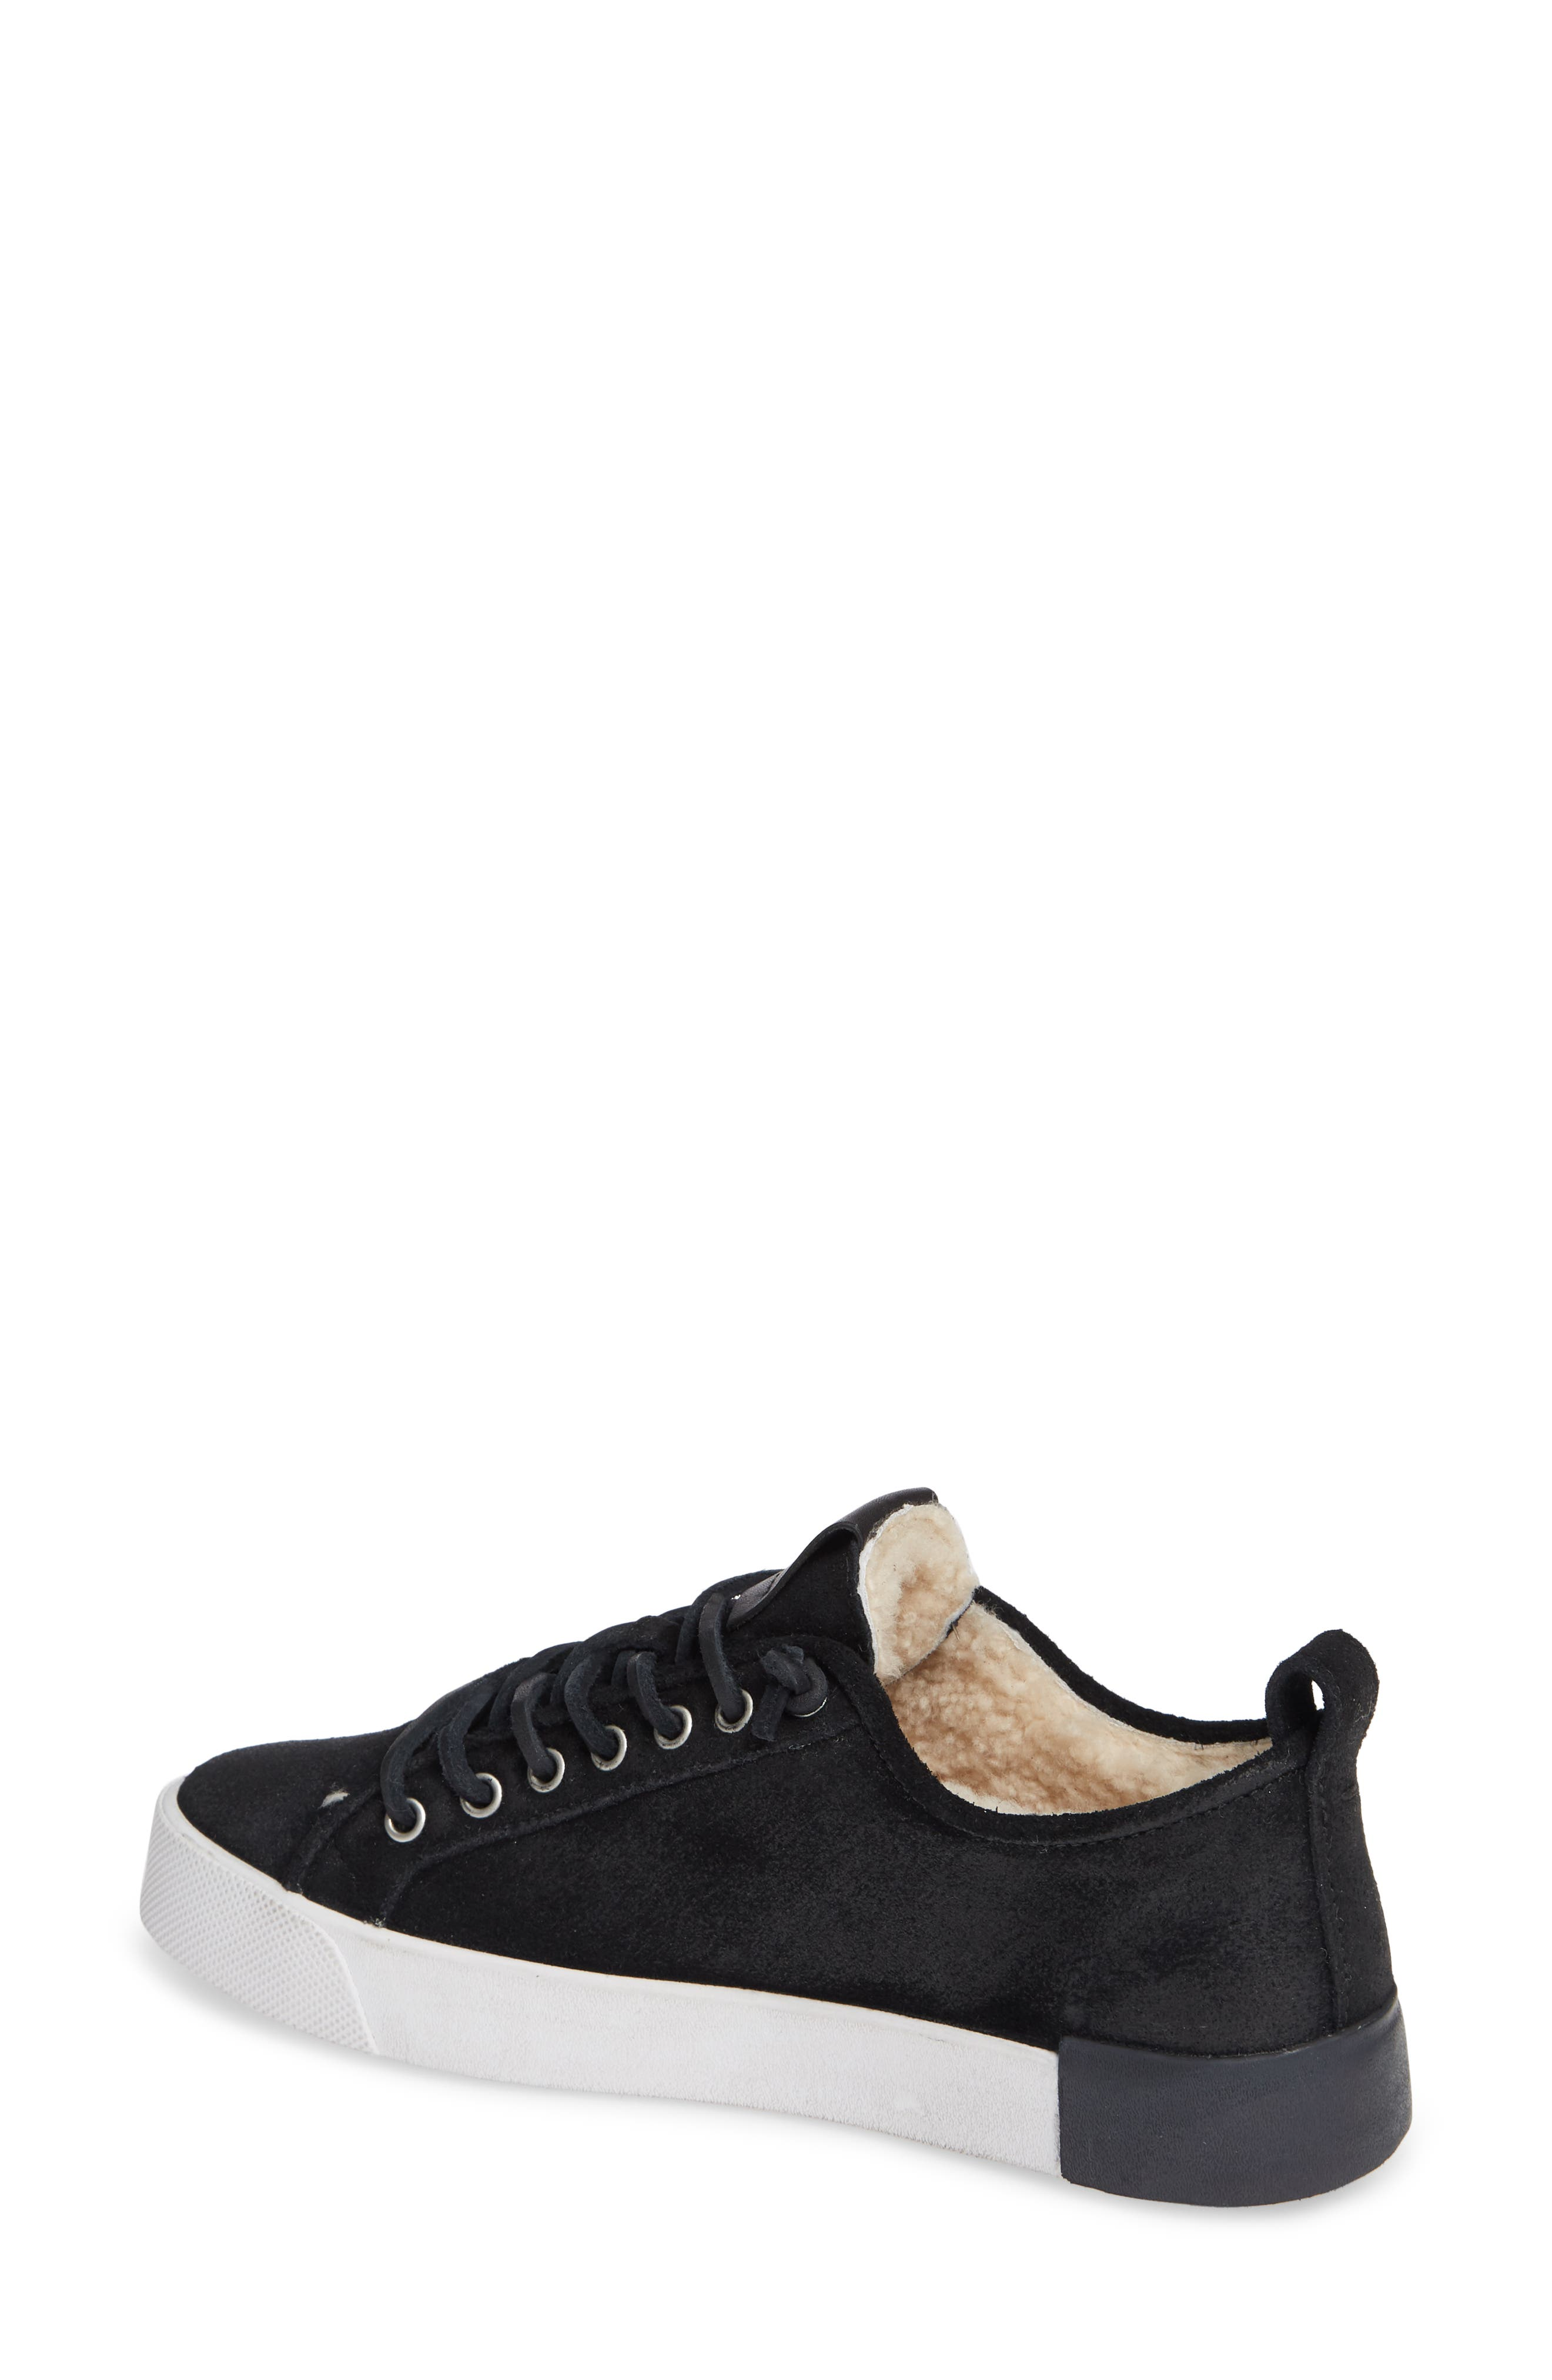 QL60 Genuine Shearling Lined Sneaker,                             Alternate thumbnail 2, color,                             BLACK LEATHER